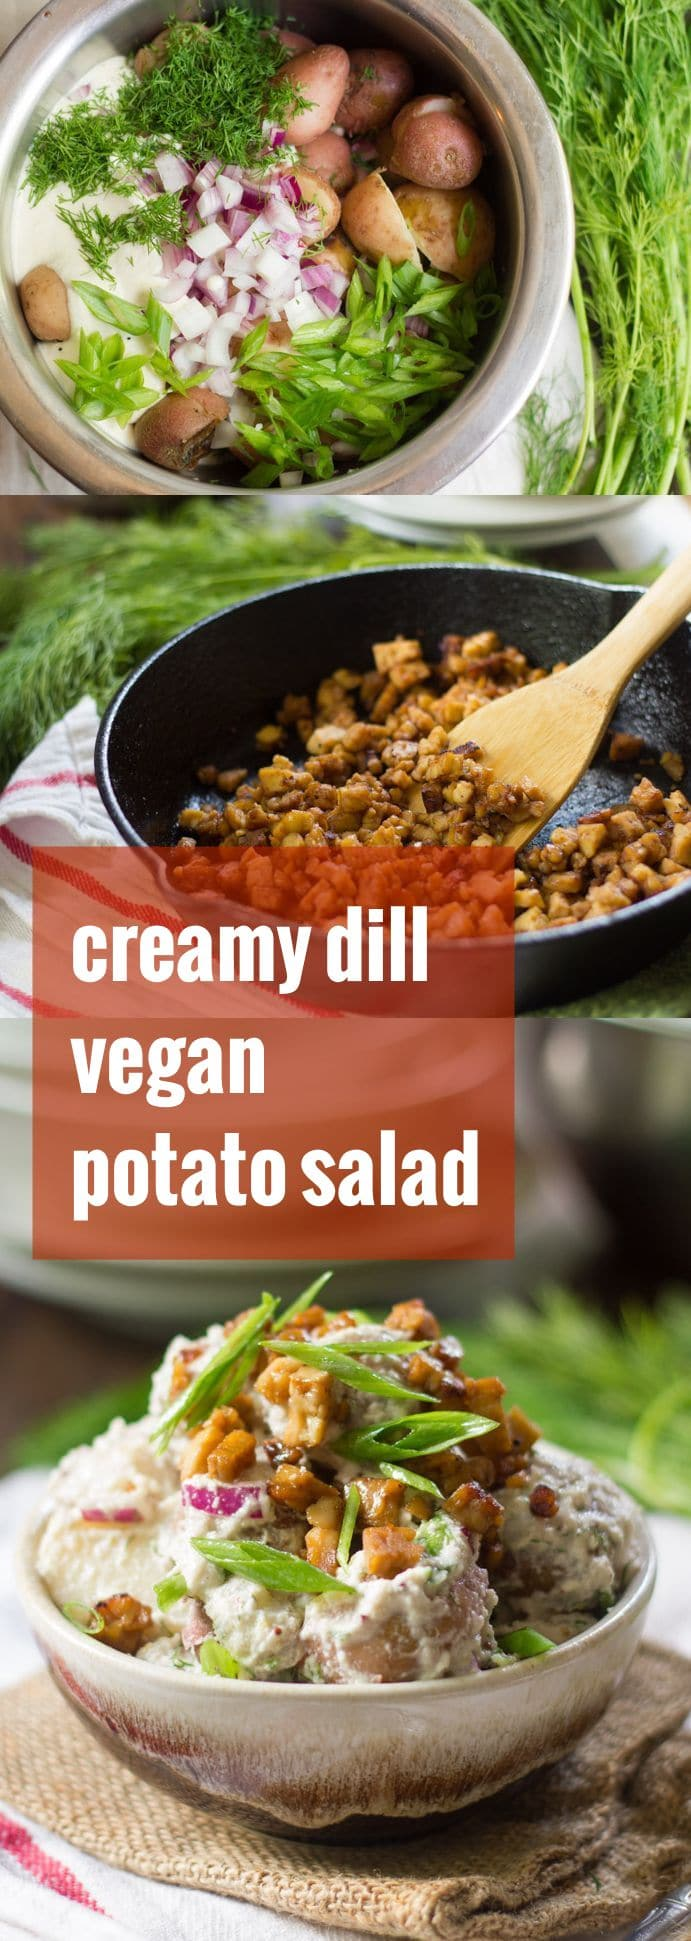 Creamy Dill Vegan Potato Salad with (Optional) Tempeh Bacon Bits